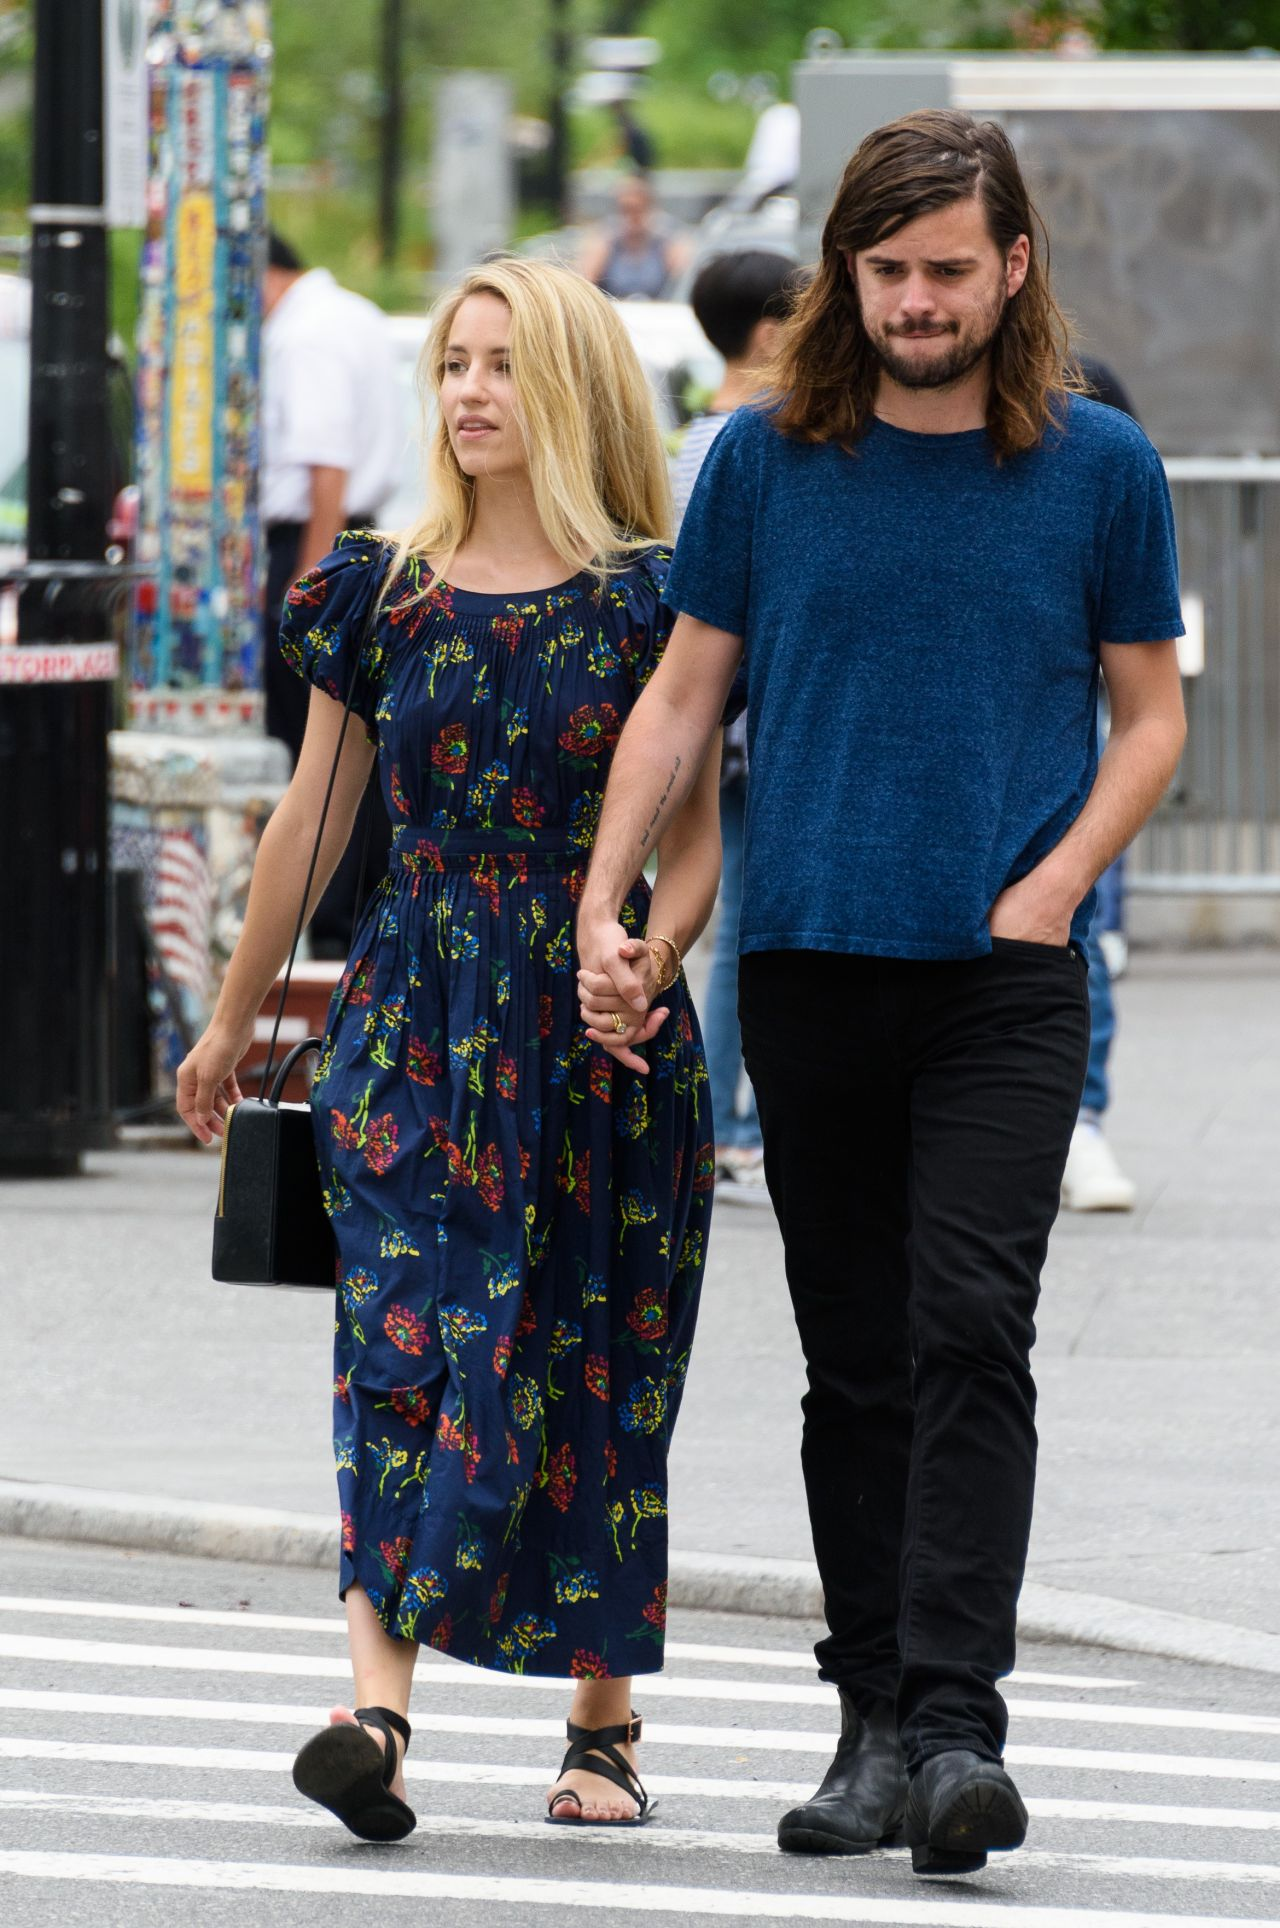 Dianna Agron and Winston Marshall Out in NYC 07/22/2018 ...